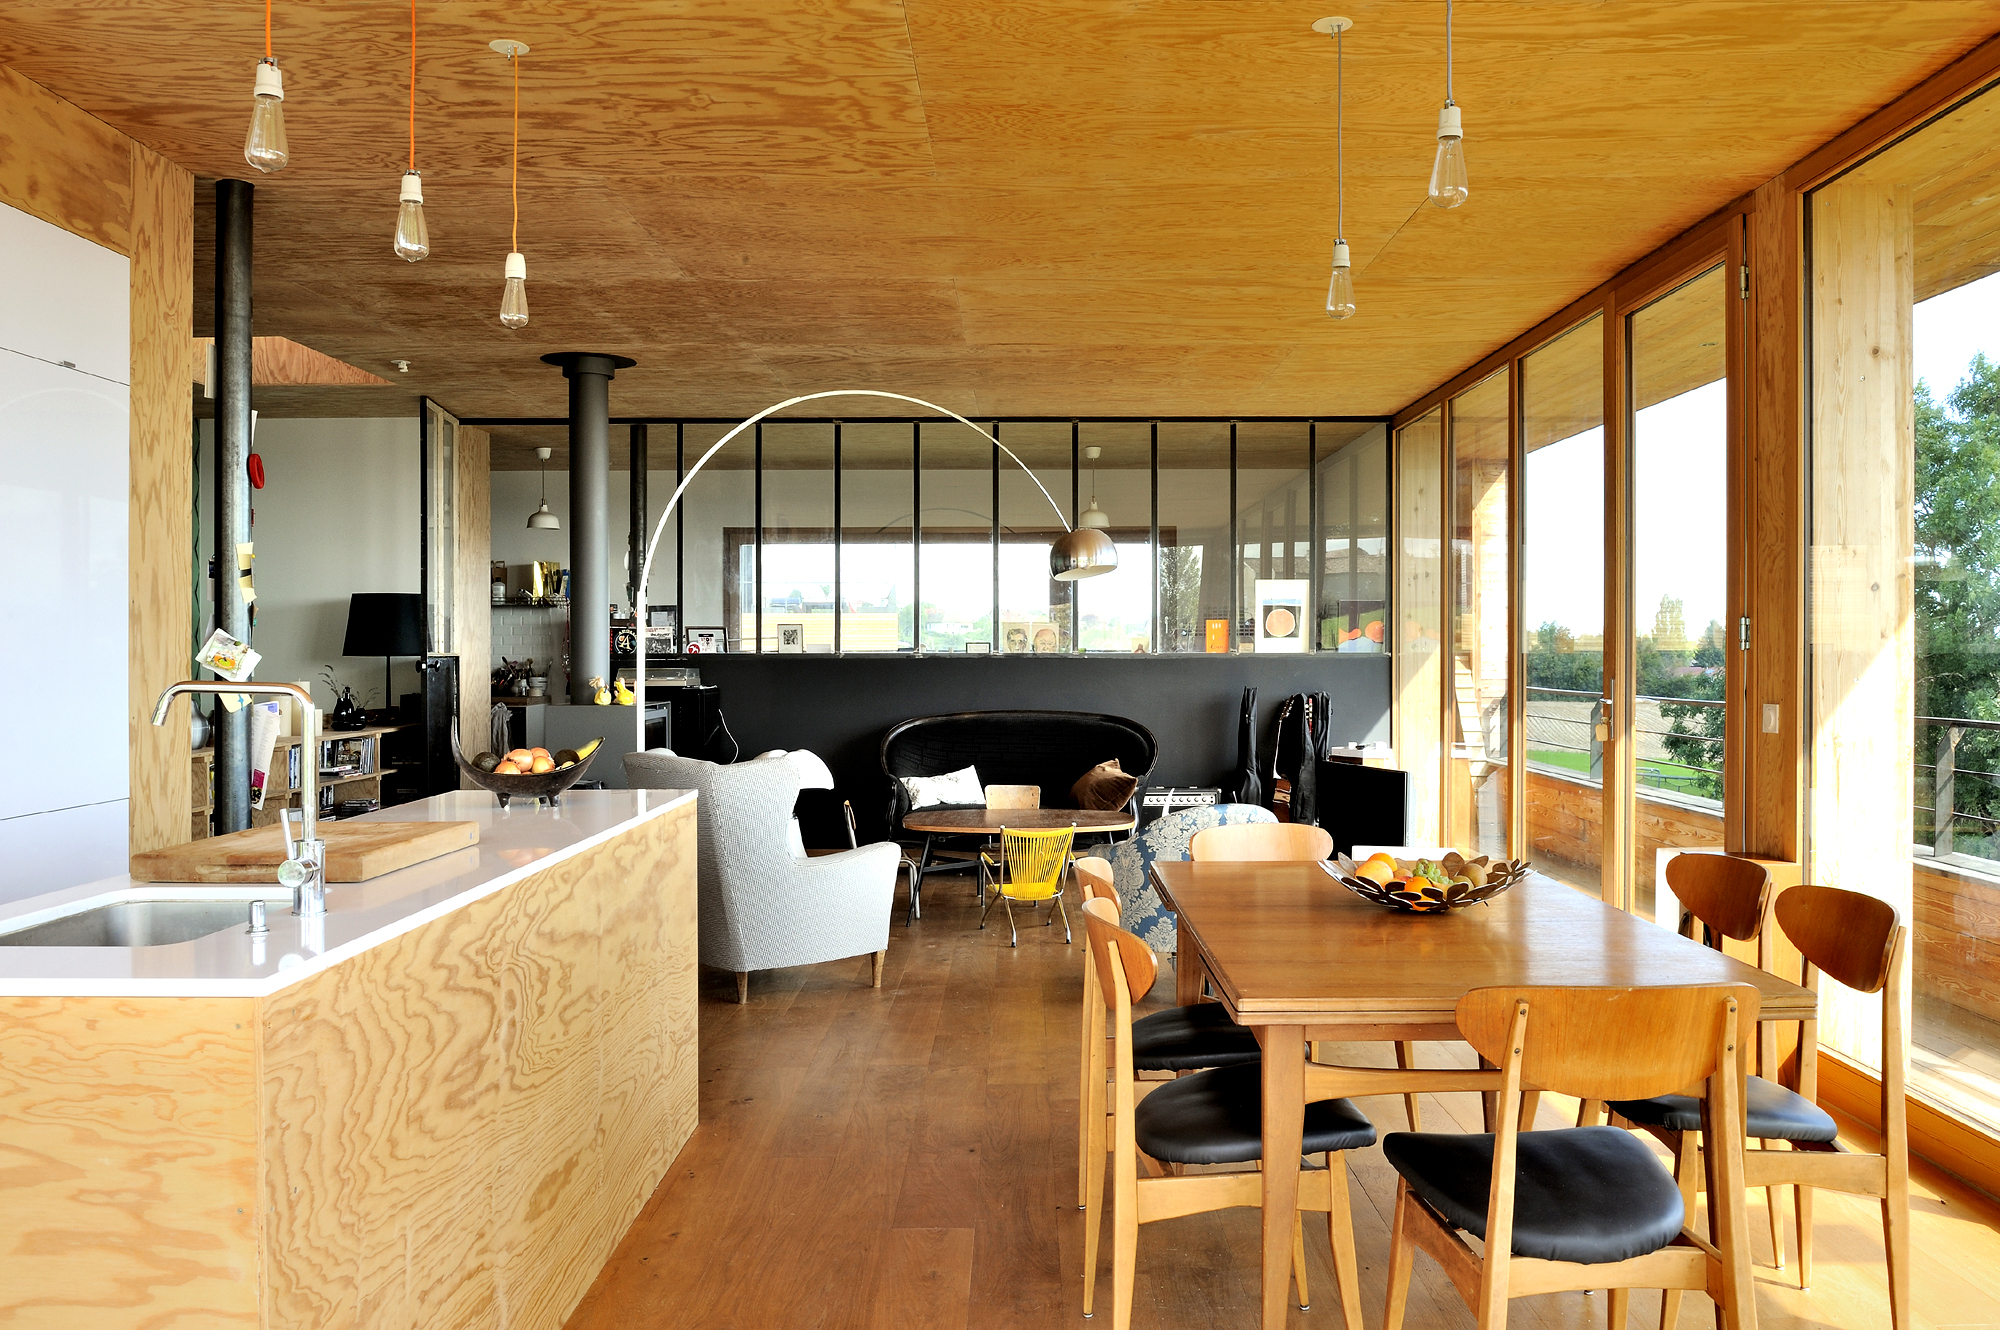 Amenagement interieur maison en bois for Interieur en bois